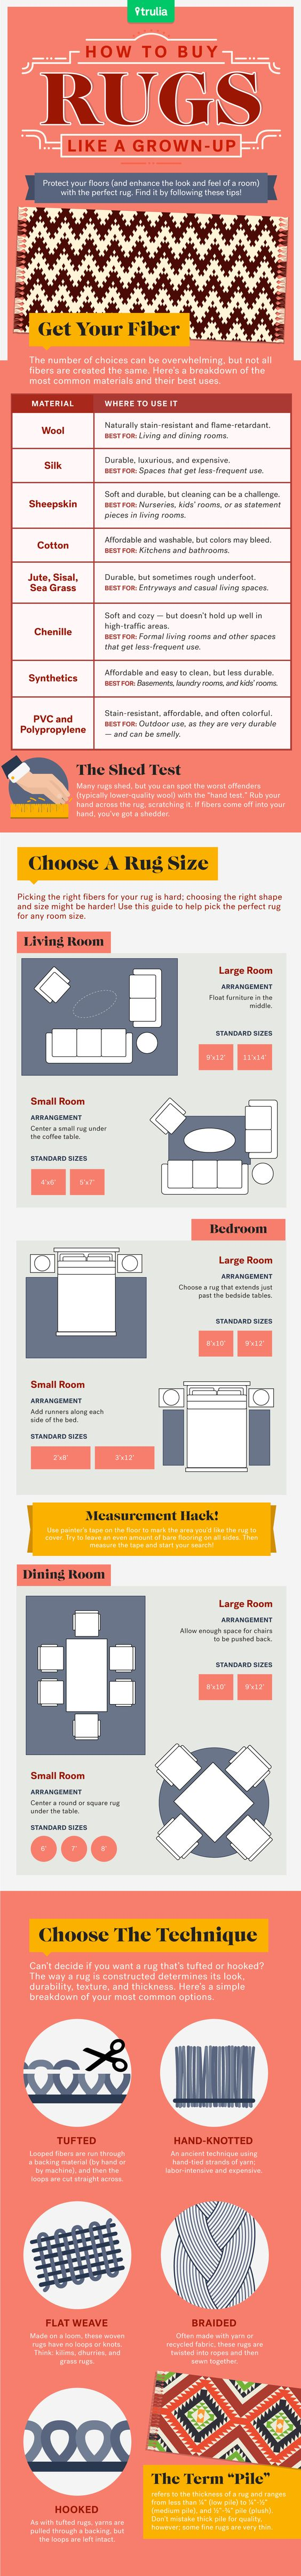 How do you buy a rug like a grown-up? We asked interior designers and industry professionals what they recommend looking for to find a rug that won't let you down and put it in this handy guide. Download the entire rug buying cheat sheet by clicking the link.